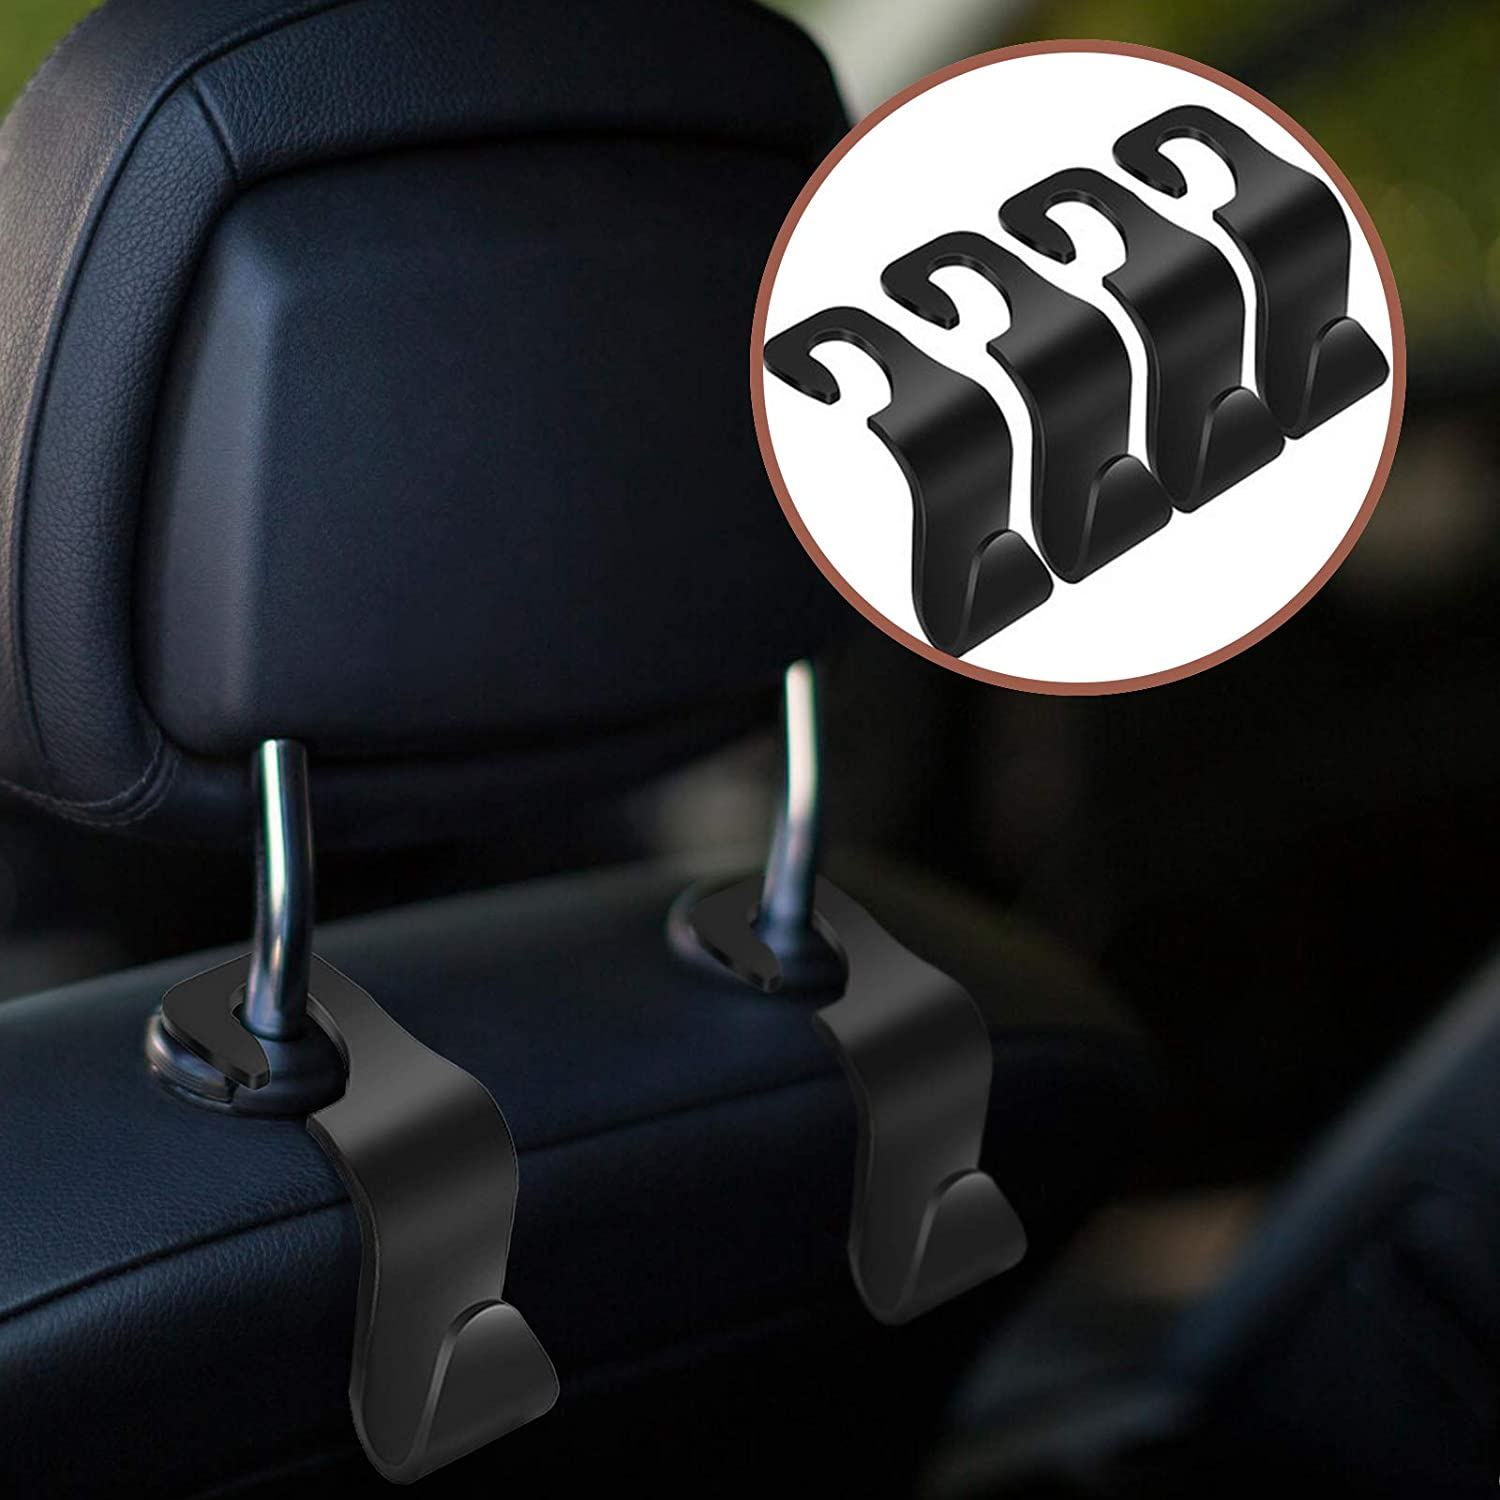 Car Seat Gap Organizer Jeteven Car Seat Gap Filler Keys Console Side Pocket Storage Box for Cellphones Coin Sunglasses Wallets Multifunctional Car Seat Organizer with Cup Holder Cards